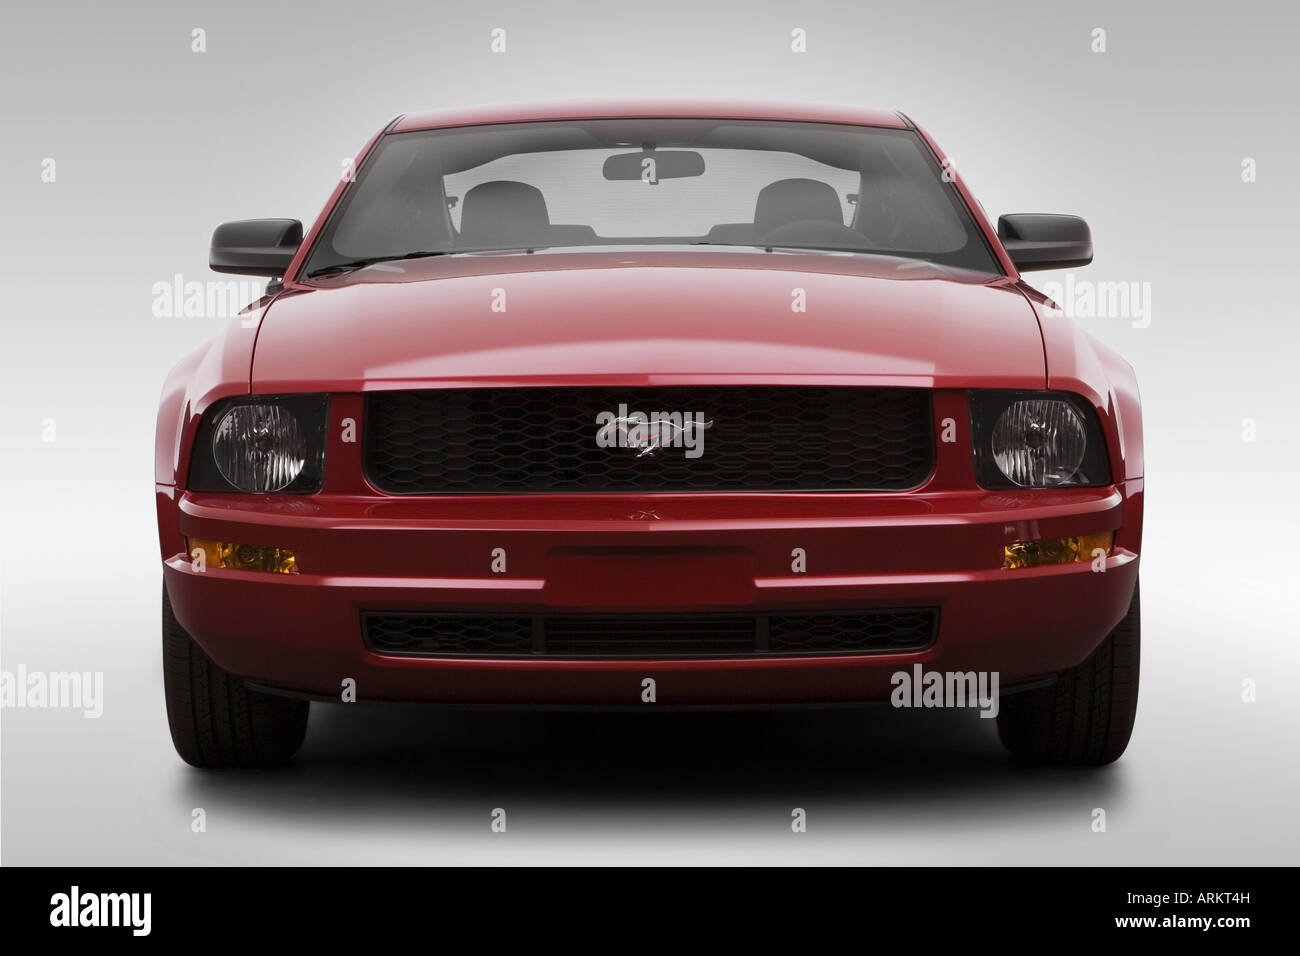 2008 ford mustang v6 deluxe in red low wide front stock image